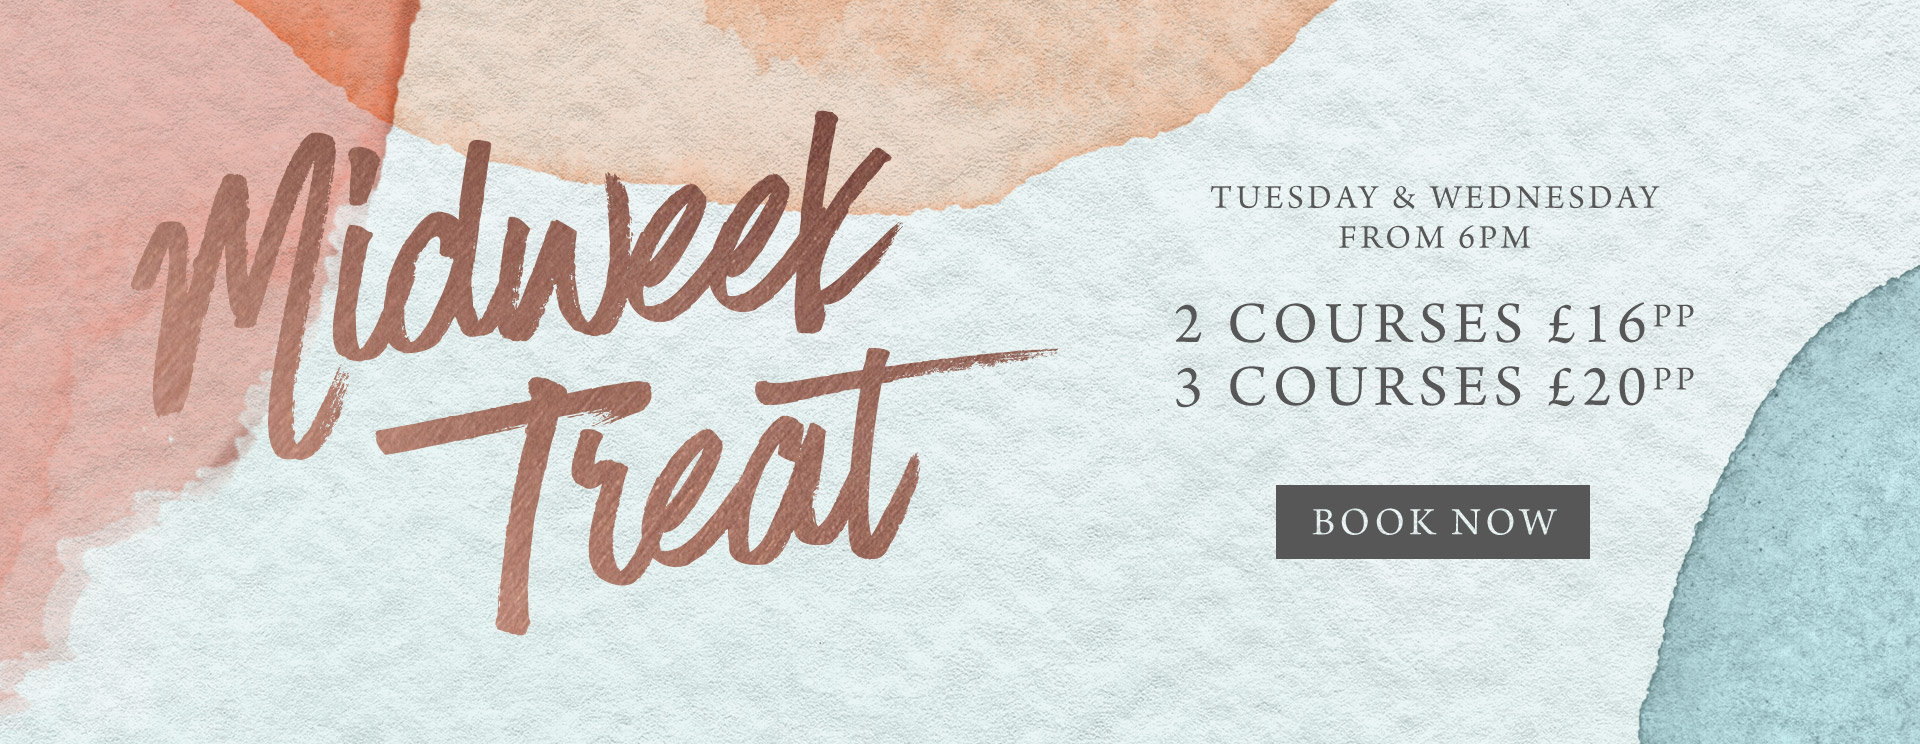 Midweek treat at The Oat Sheaf - Book now